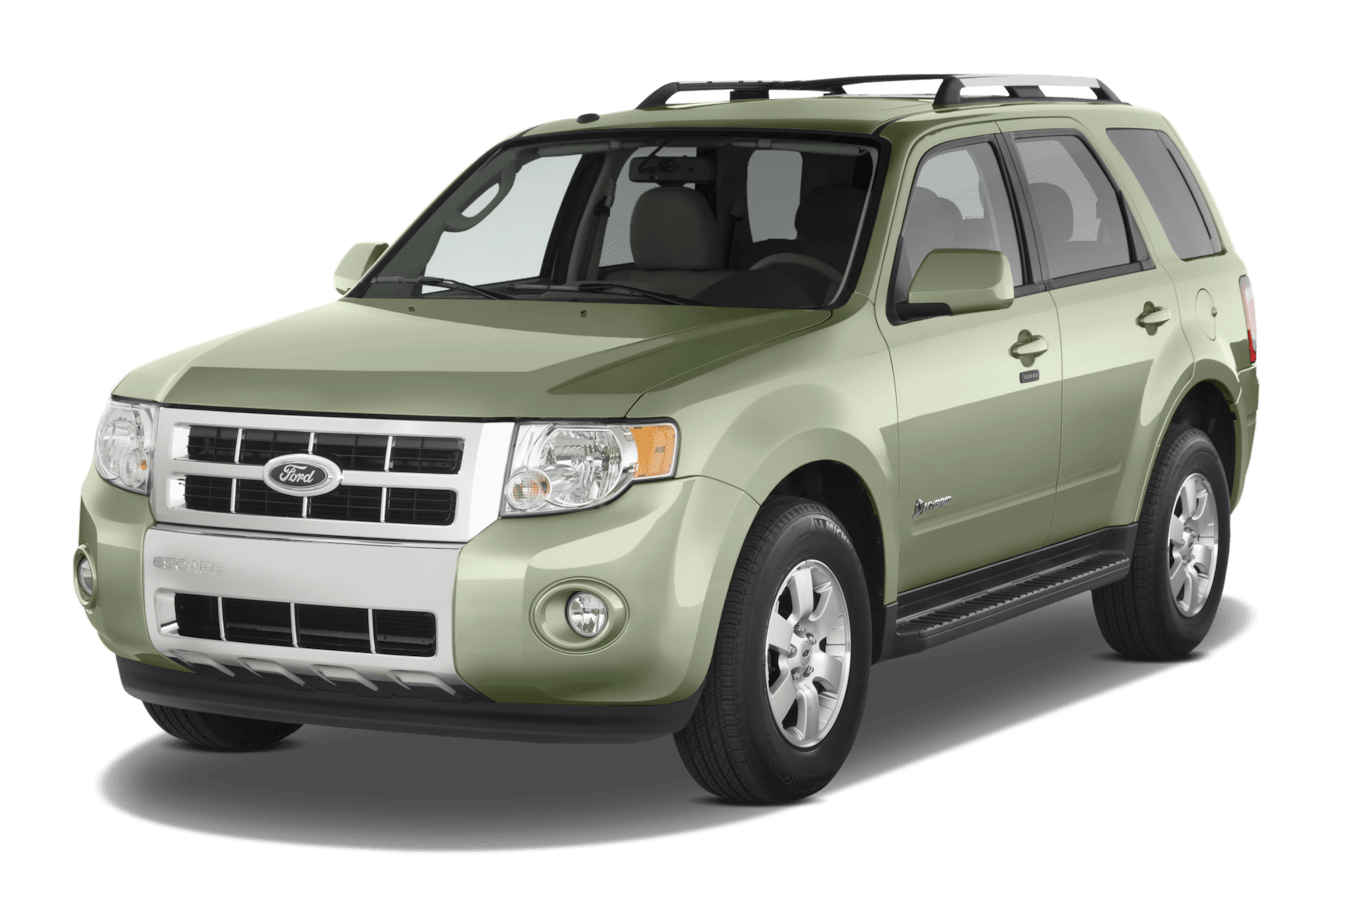 2011 Ford Escape Reviews And Rating  Motor Trend